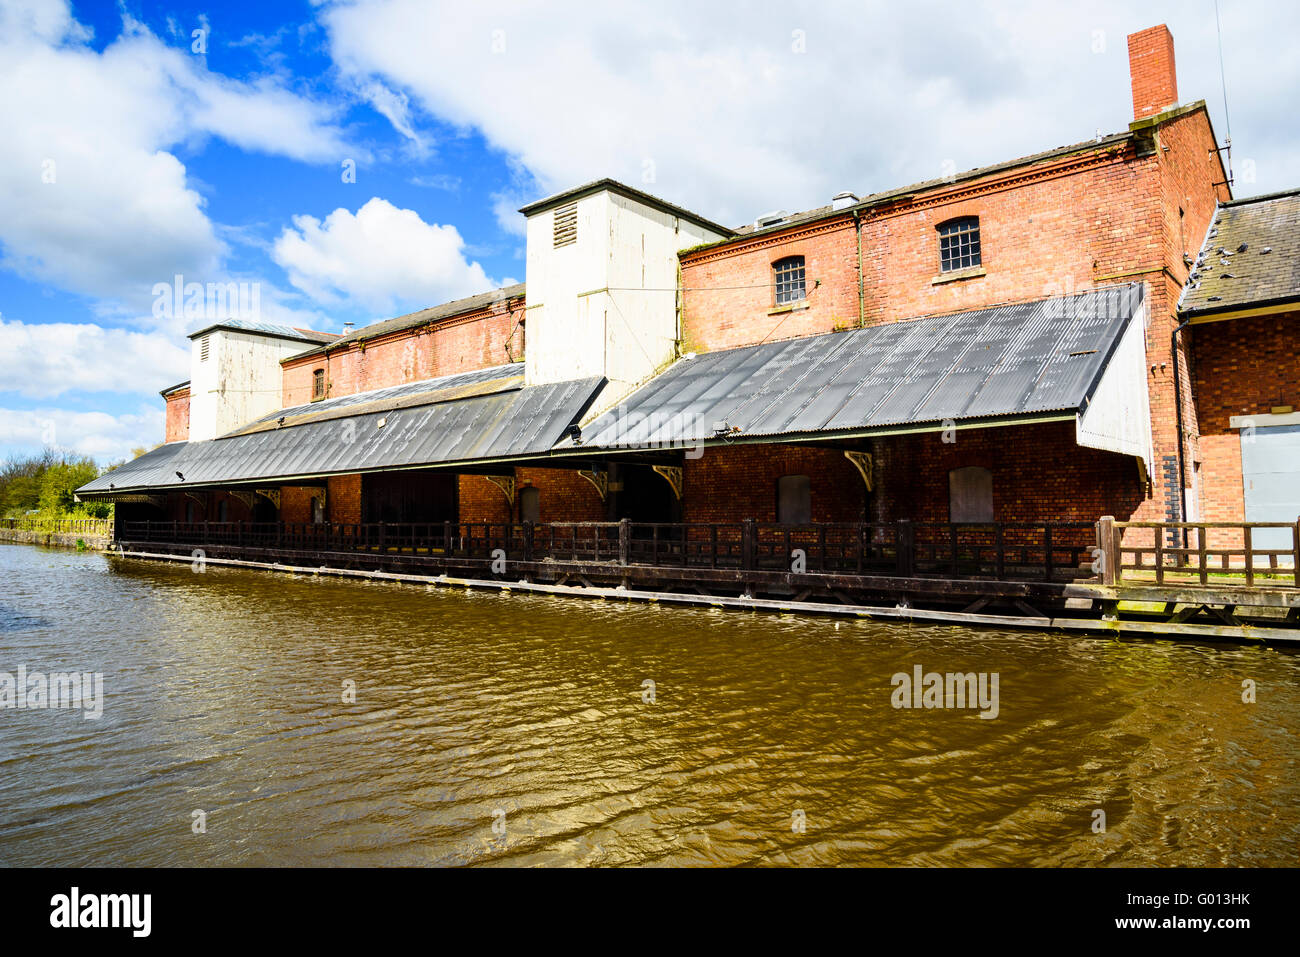 Wigan Pier on the Leeds and Liverpool Canal in Wigan Greater Manchester UK - Stock Image